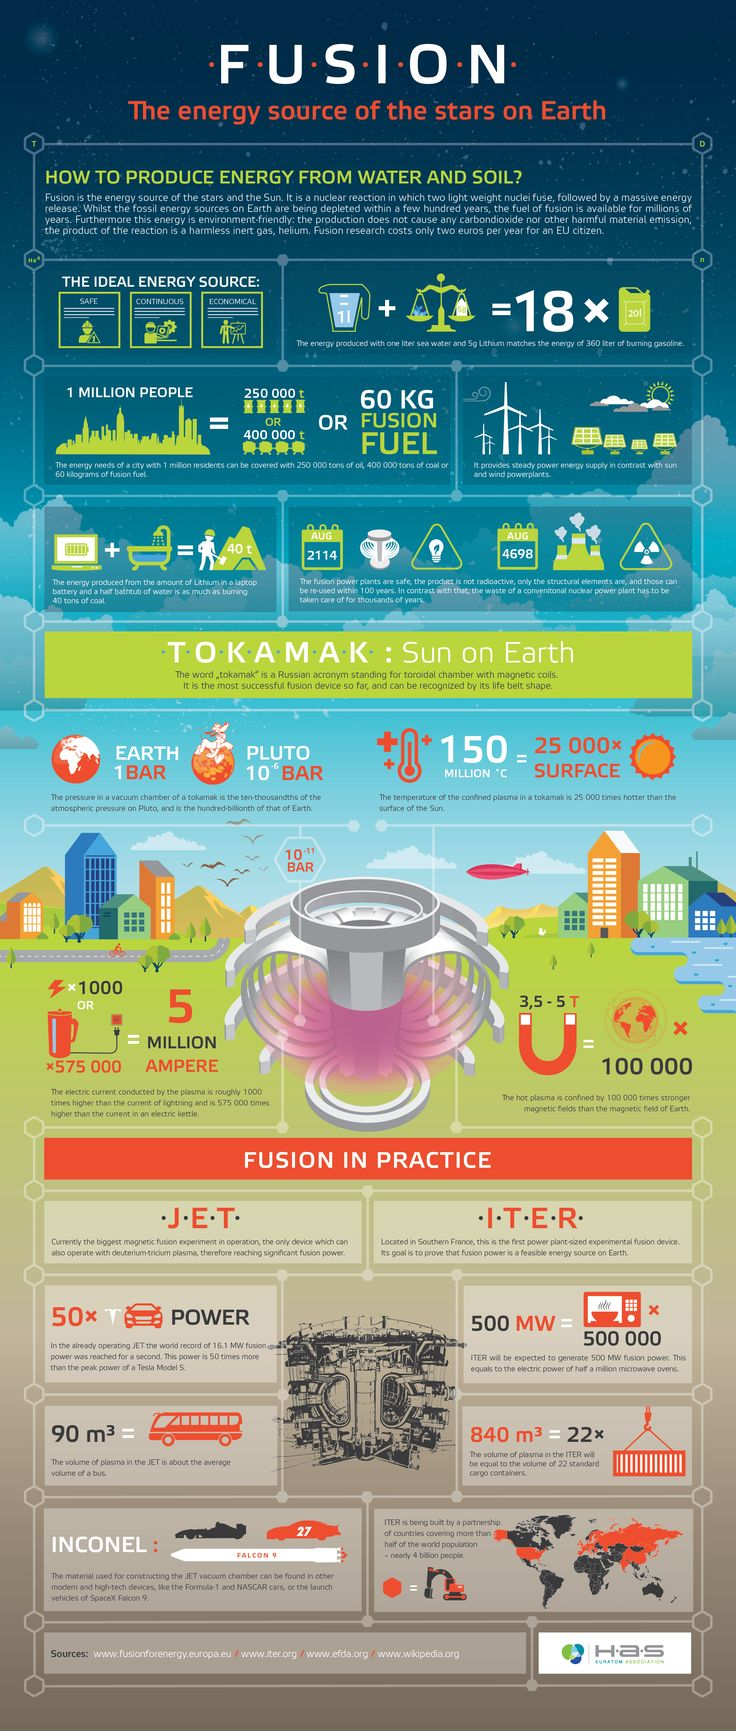 Infographic about fusion of Institute for Particle and Nuclear Physics, Wigner Research Centre for Physics, Hungarian Academy of Sciences